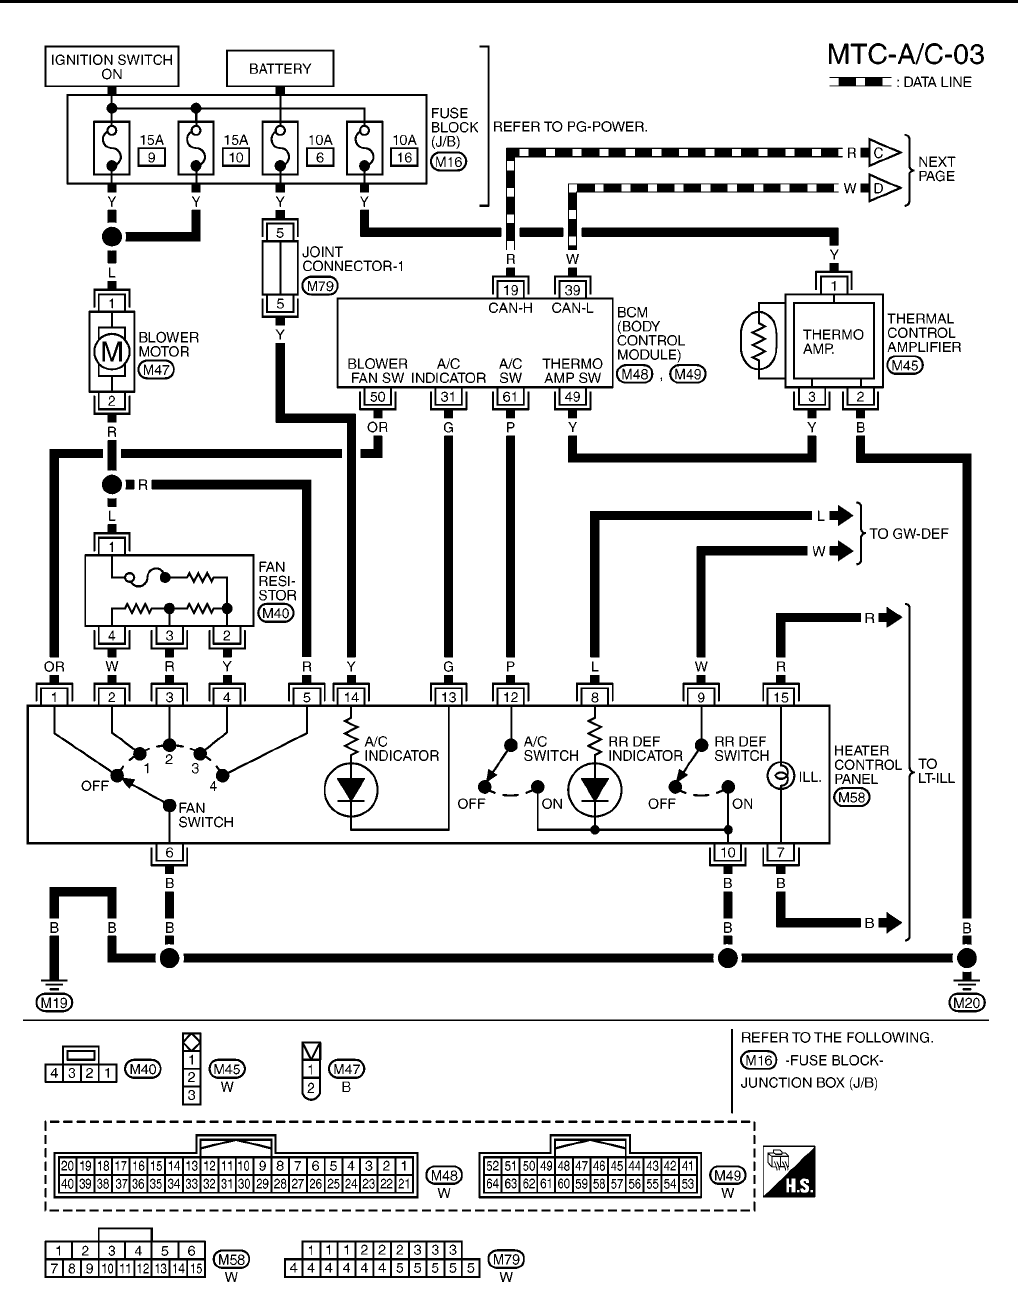 nissan micra wiring diagrams 2003 2005 24 pdf rh manuals co nissan micra wiring diagram k12 nissan micra radio wiring diagram